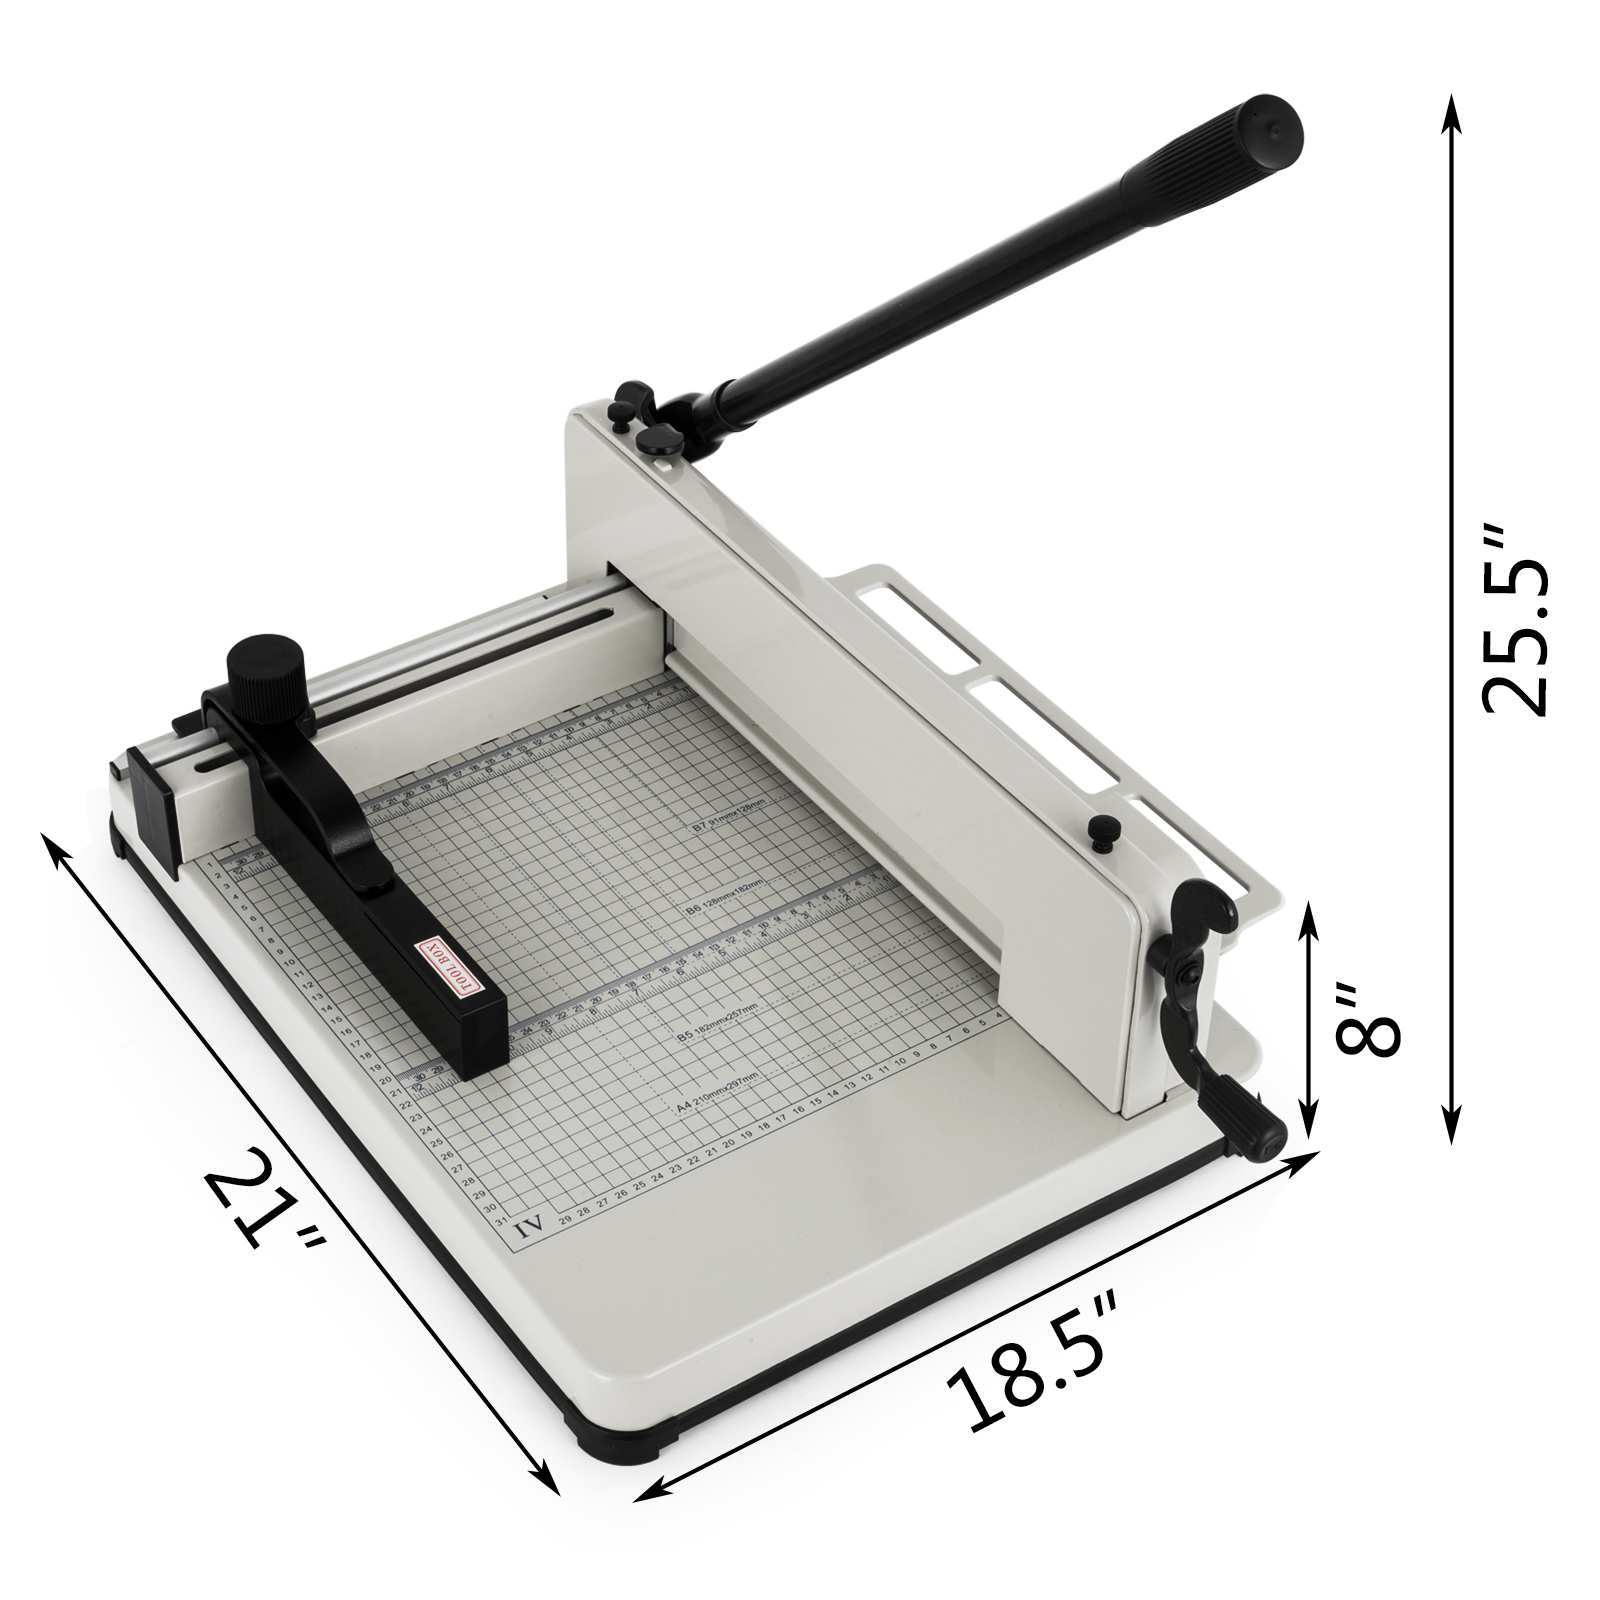 sabor paper cutter Paper cutters - joggers - lifts saber paper cutter model s-115, s/n 316615, air bed table, light safety curtain saber paper cutter model s-115, s/n 146638, air.